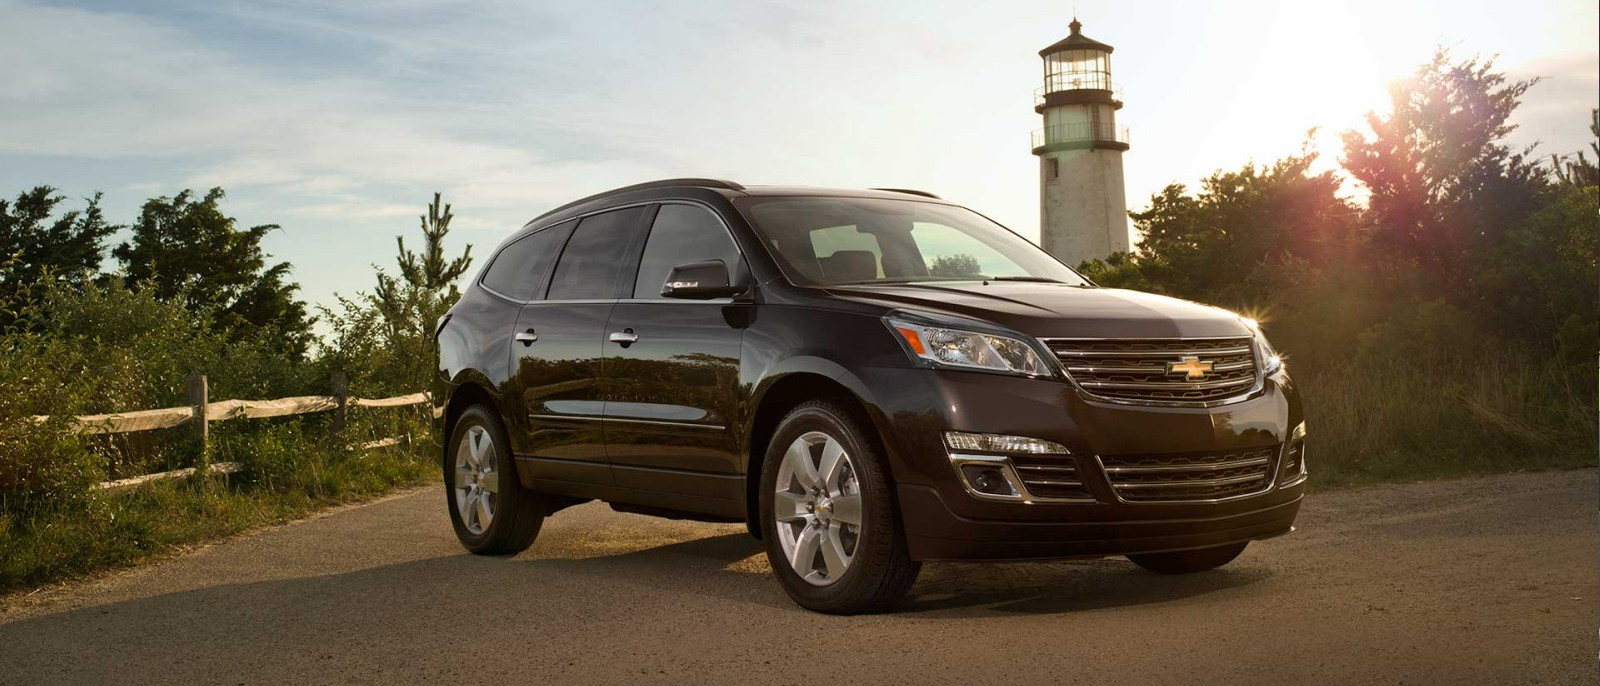 A black 2014 used Chevy Traverse is parked in front of a lighthouse.